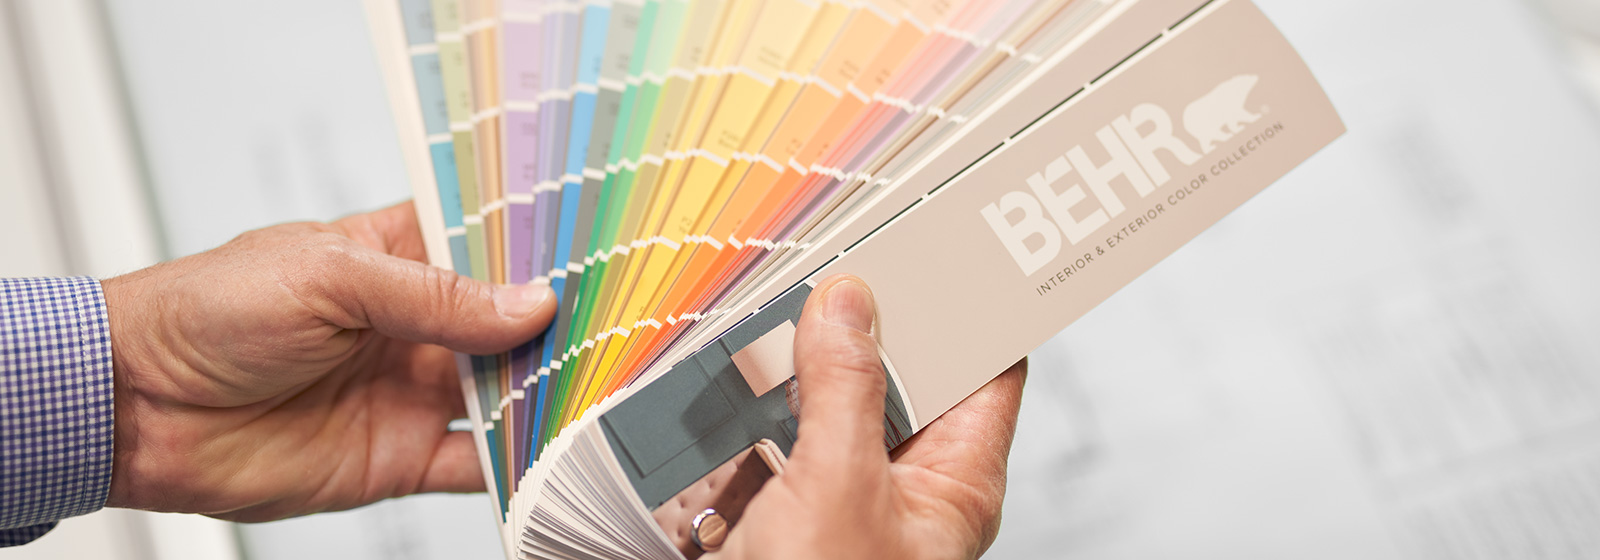 A large image of a BEHR Color Fan Deck held by a hand.